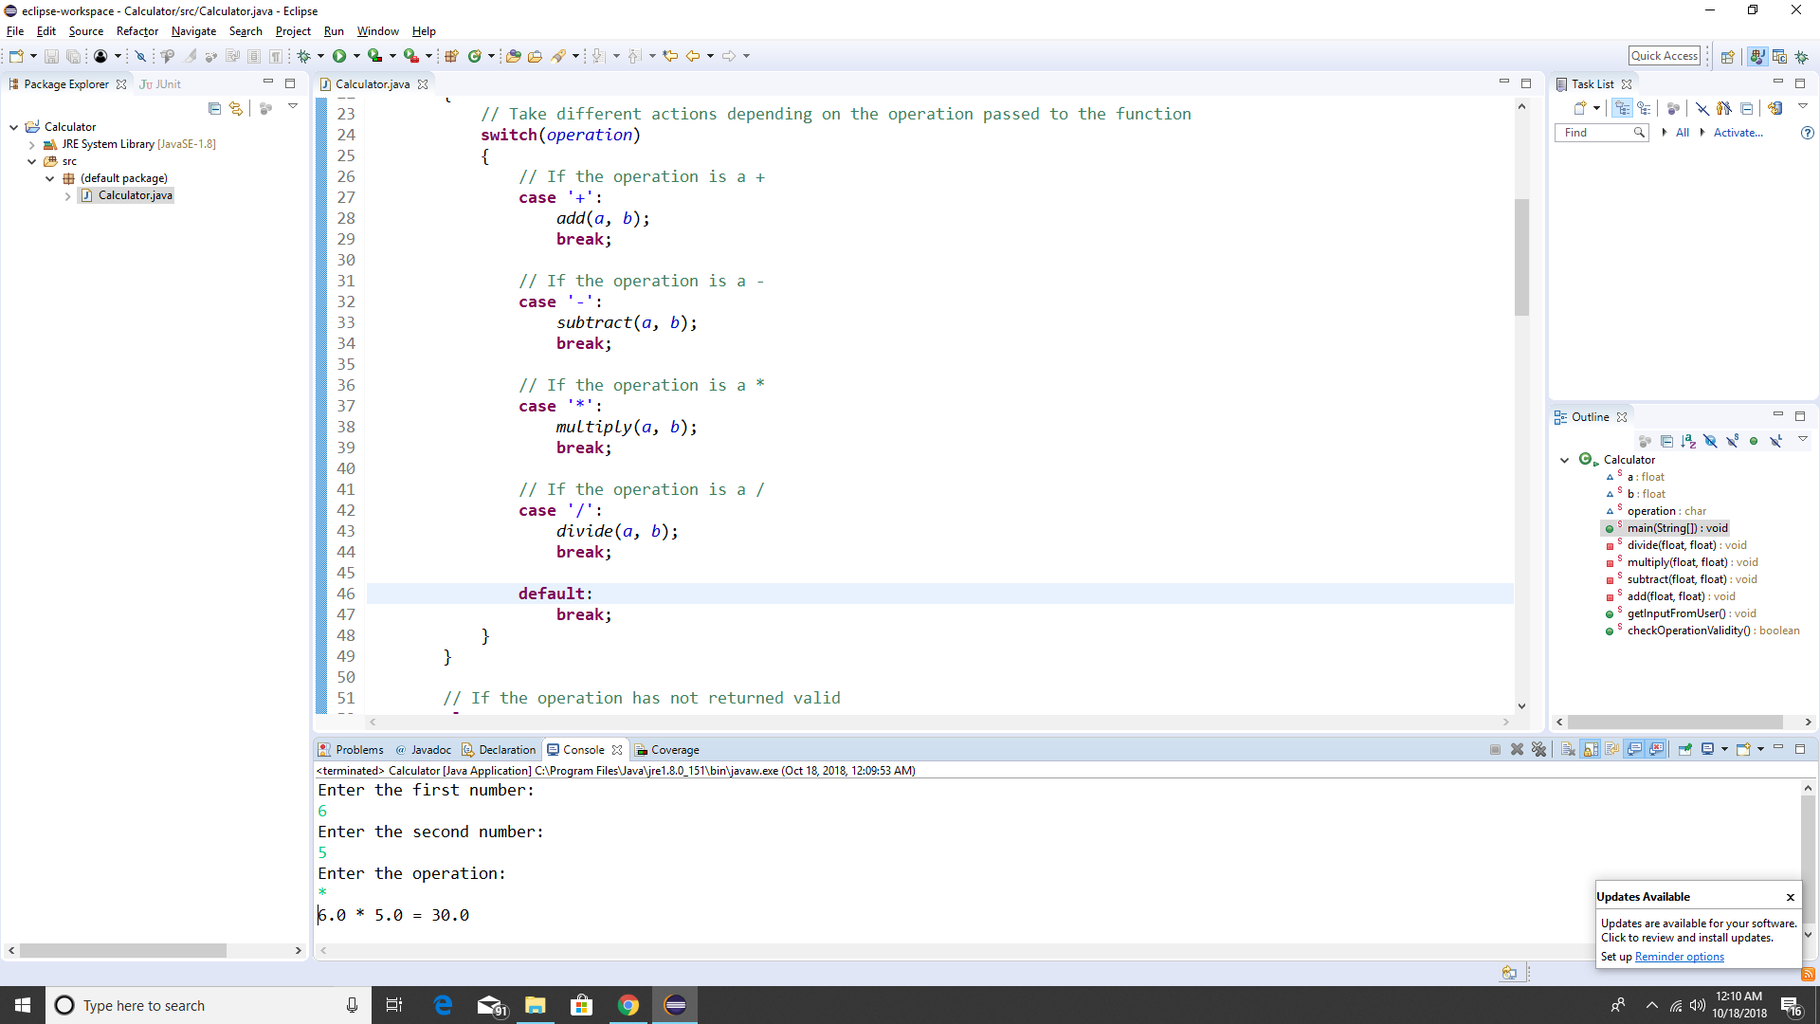 Step 7: Decide What Method to Use Based on the Operator Chosen by the User